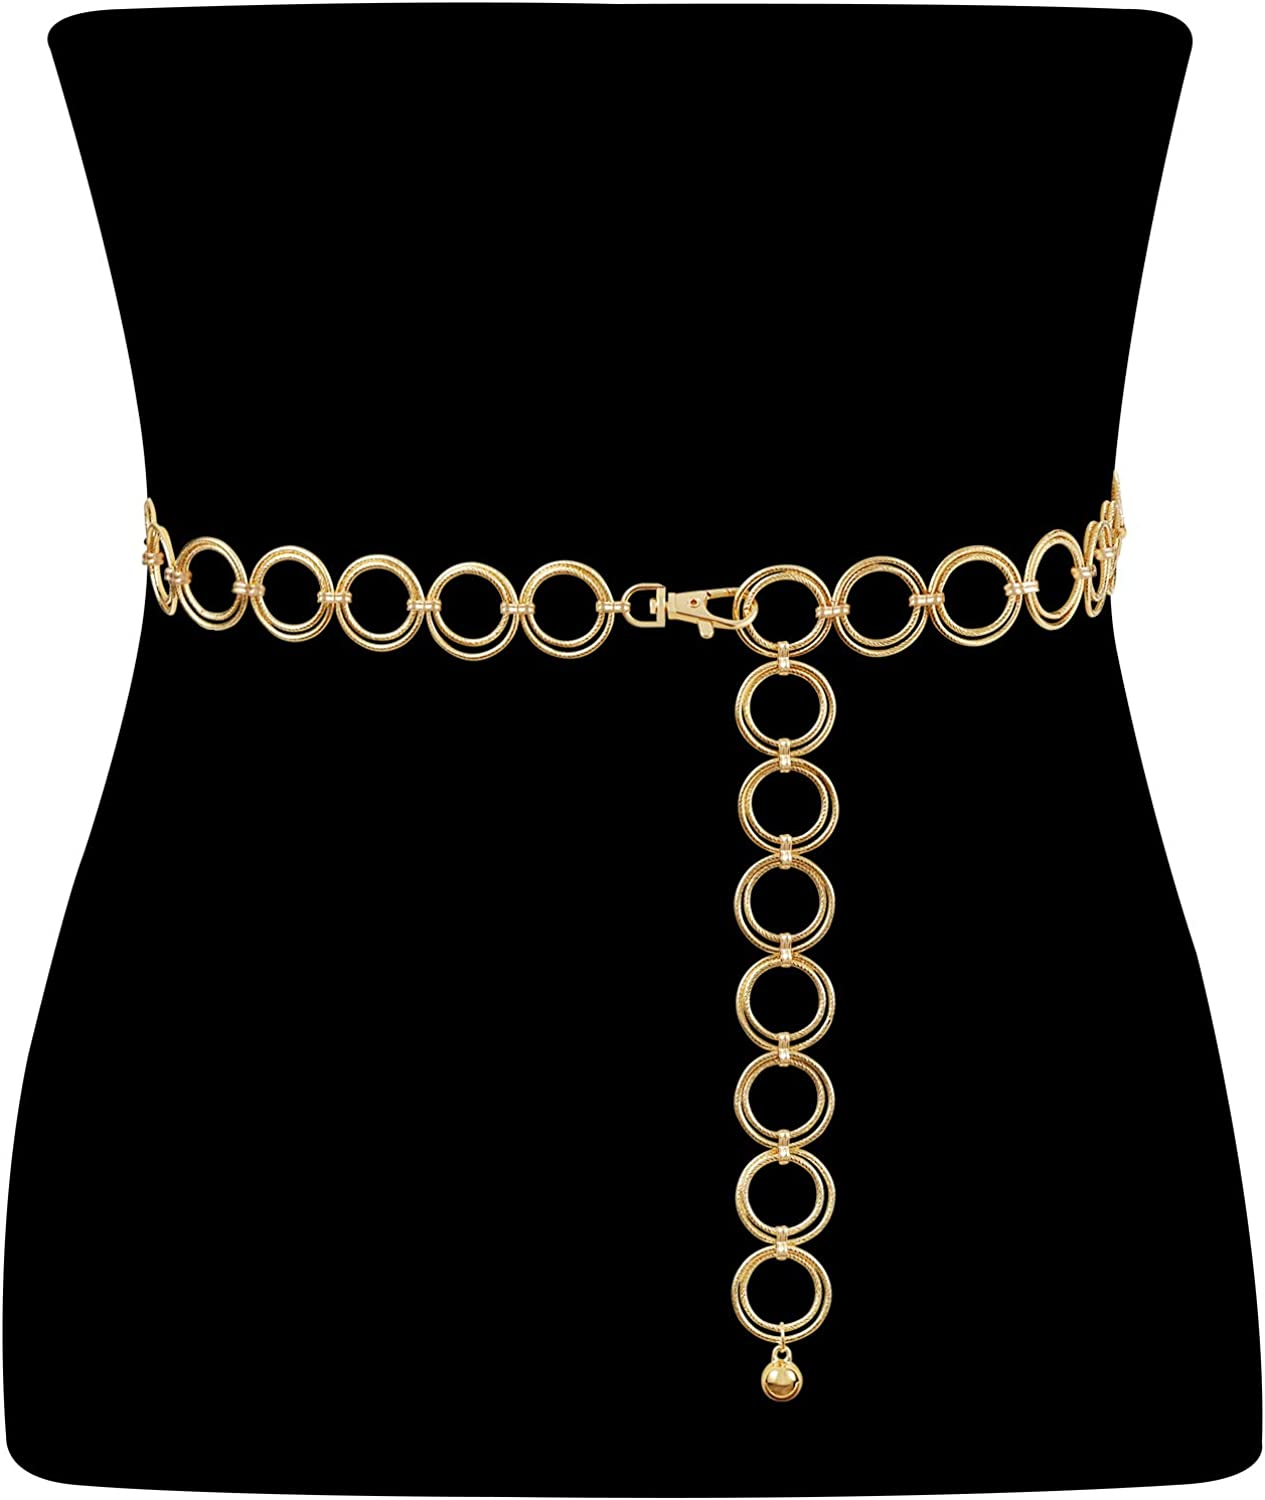 Metal Waist Chain Women Girls Adjustable Body Link Belts Fashion Belly Jewelry for Jeans Dresses Gold